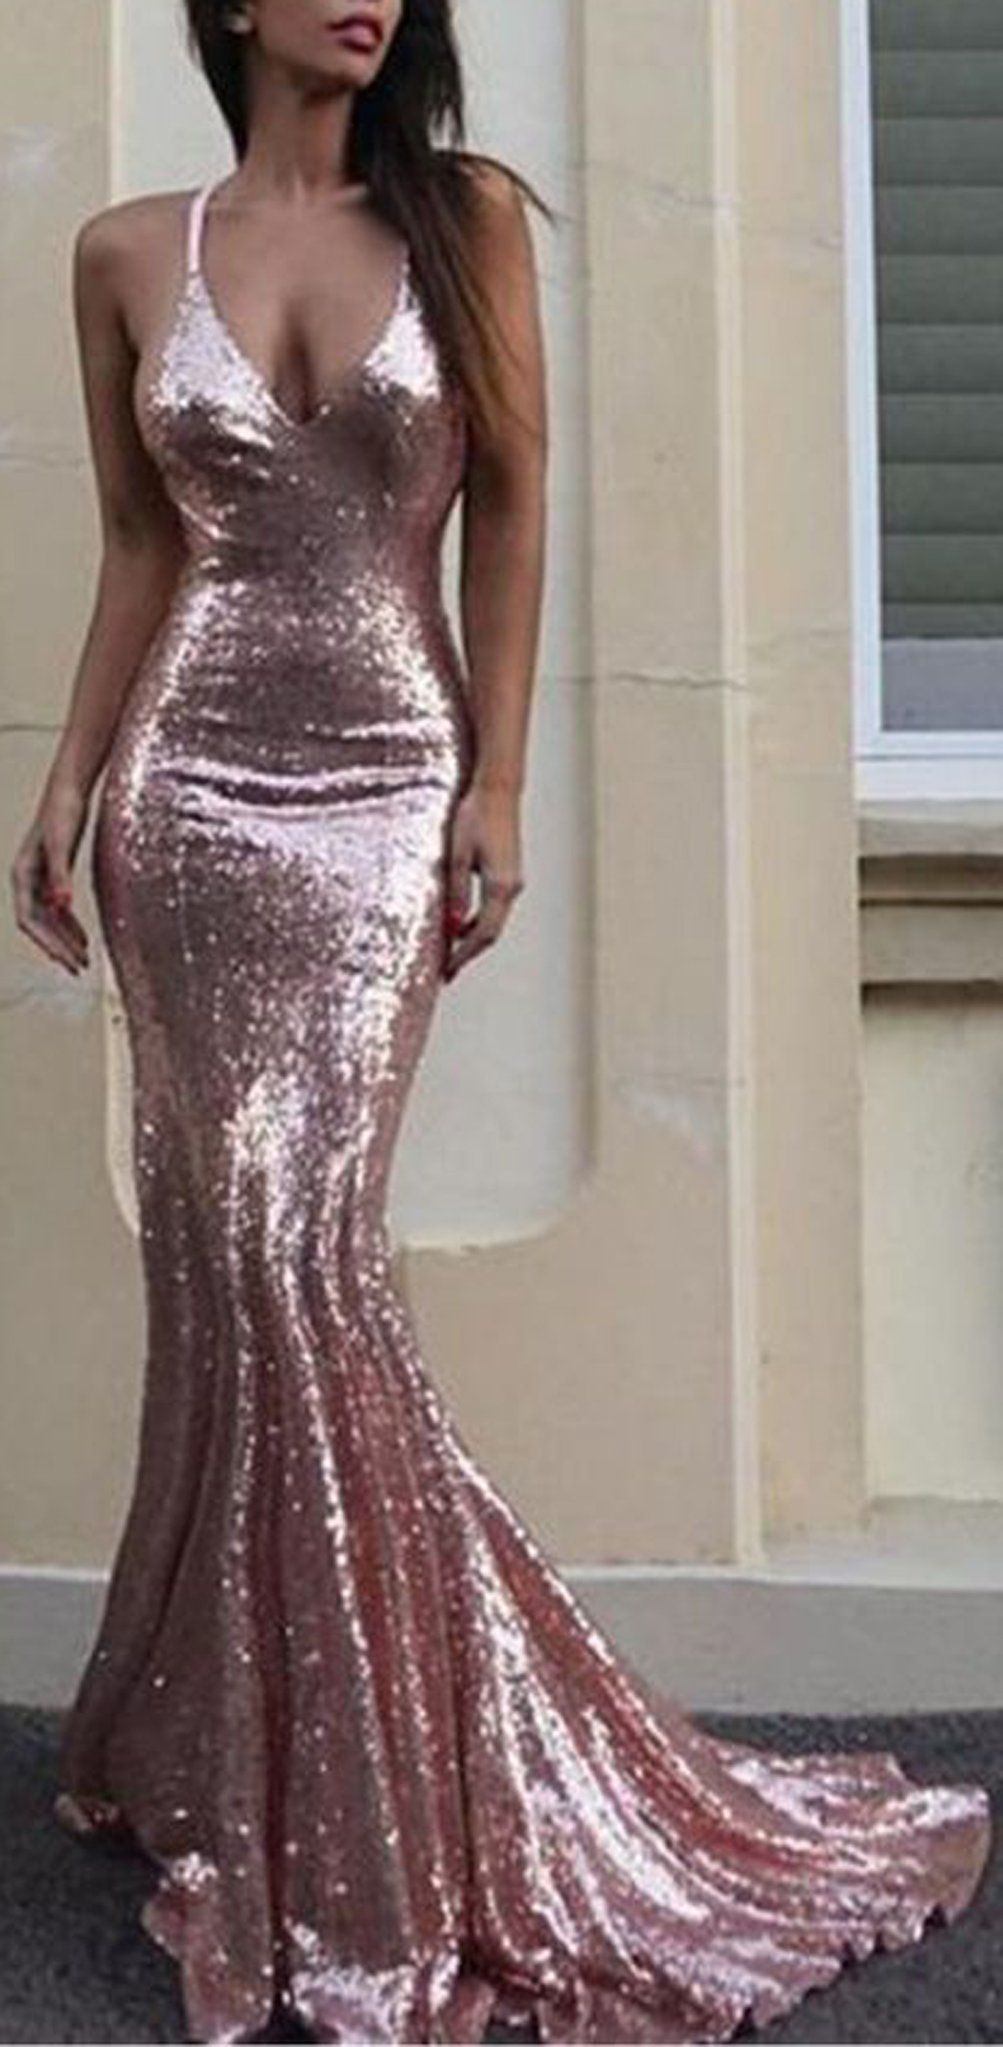 Fancy new years eve outfit ideas rose gold sequin gown